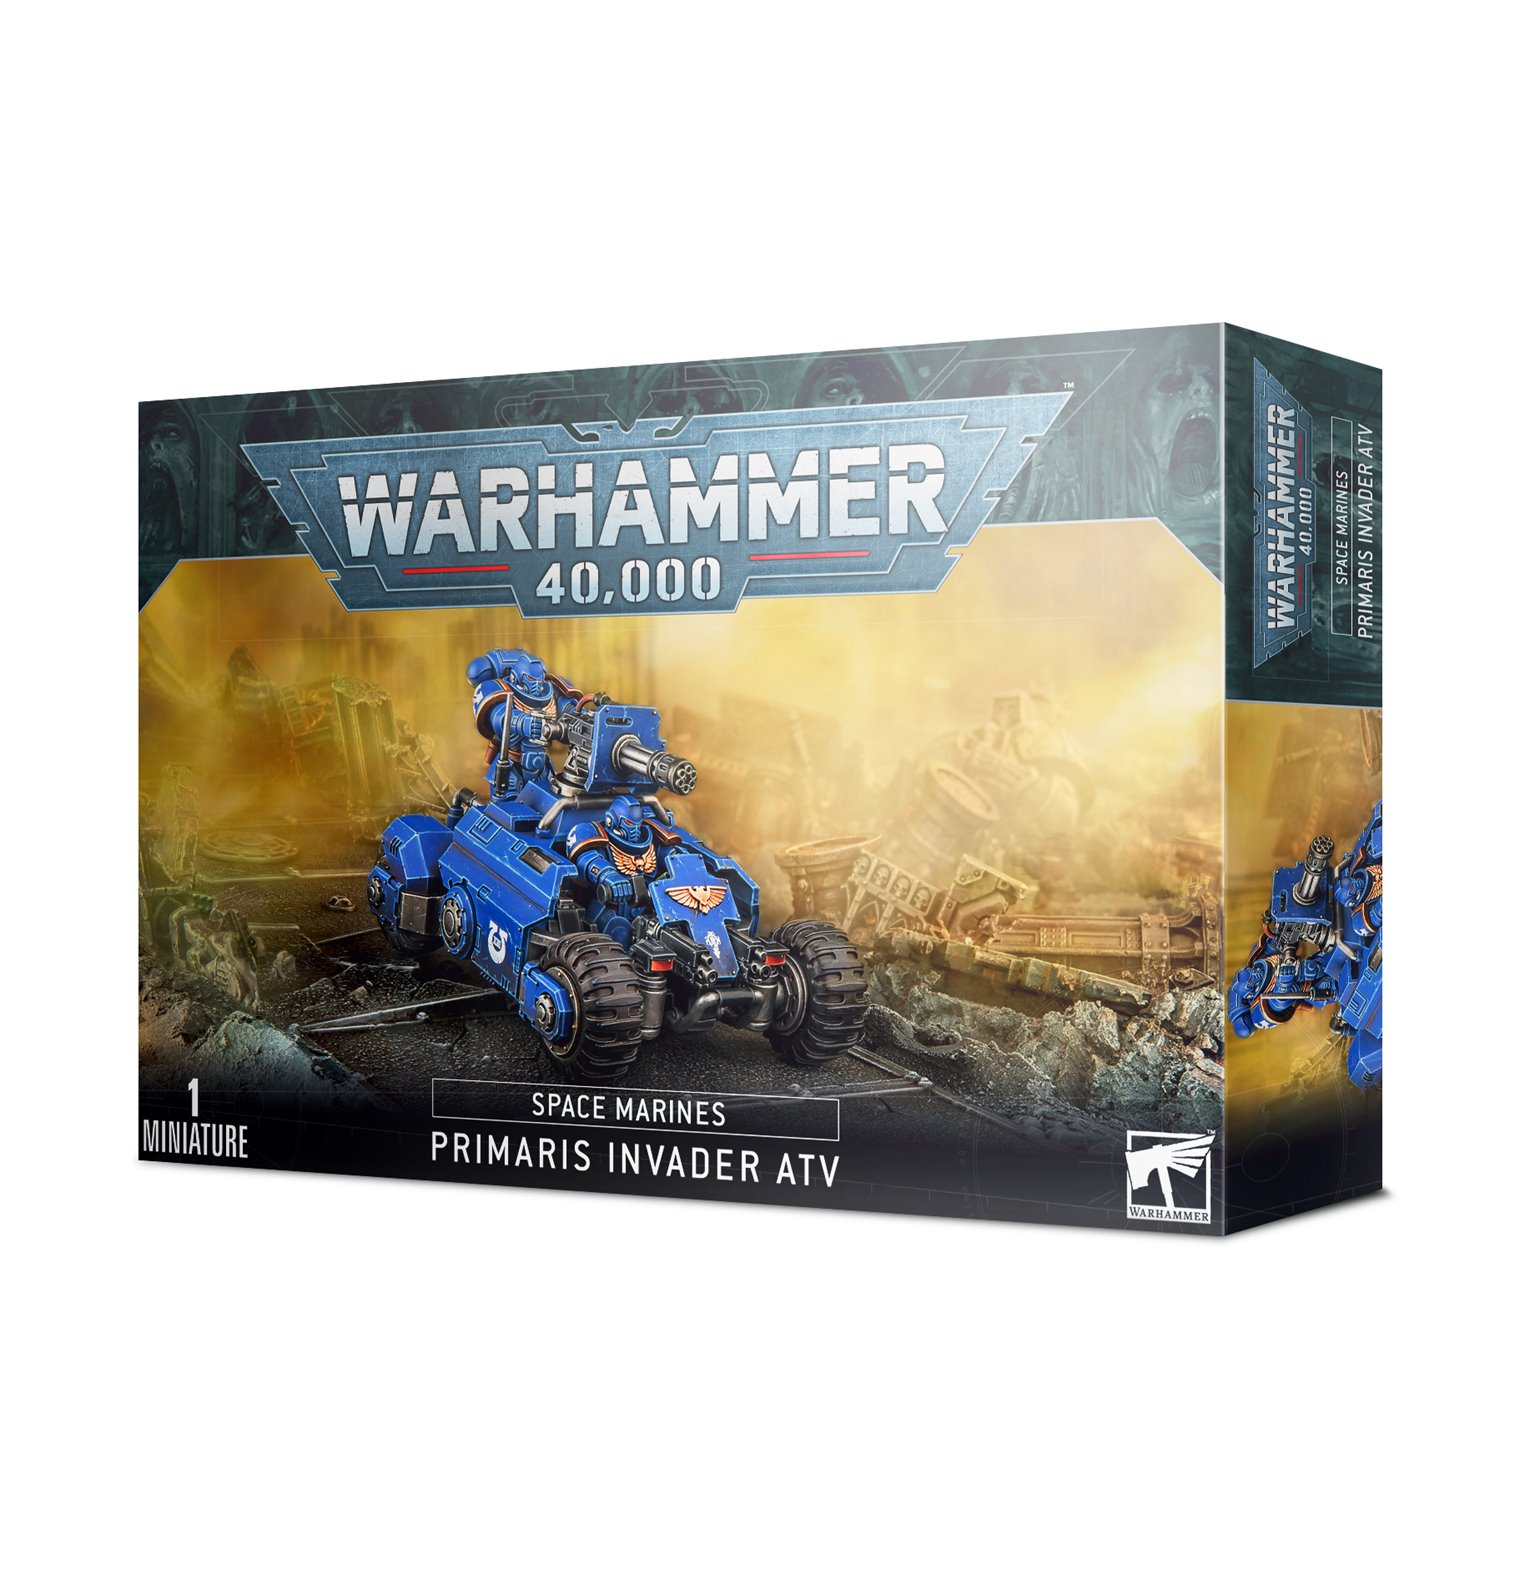 Warhammer 40,000 Space Marines Primaris Invader ATV